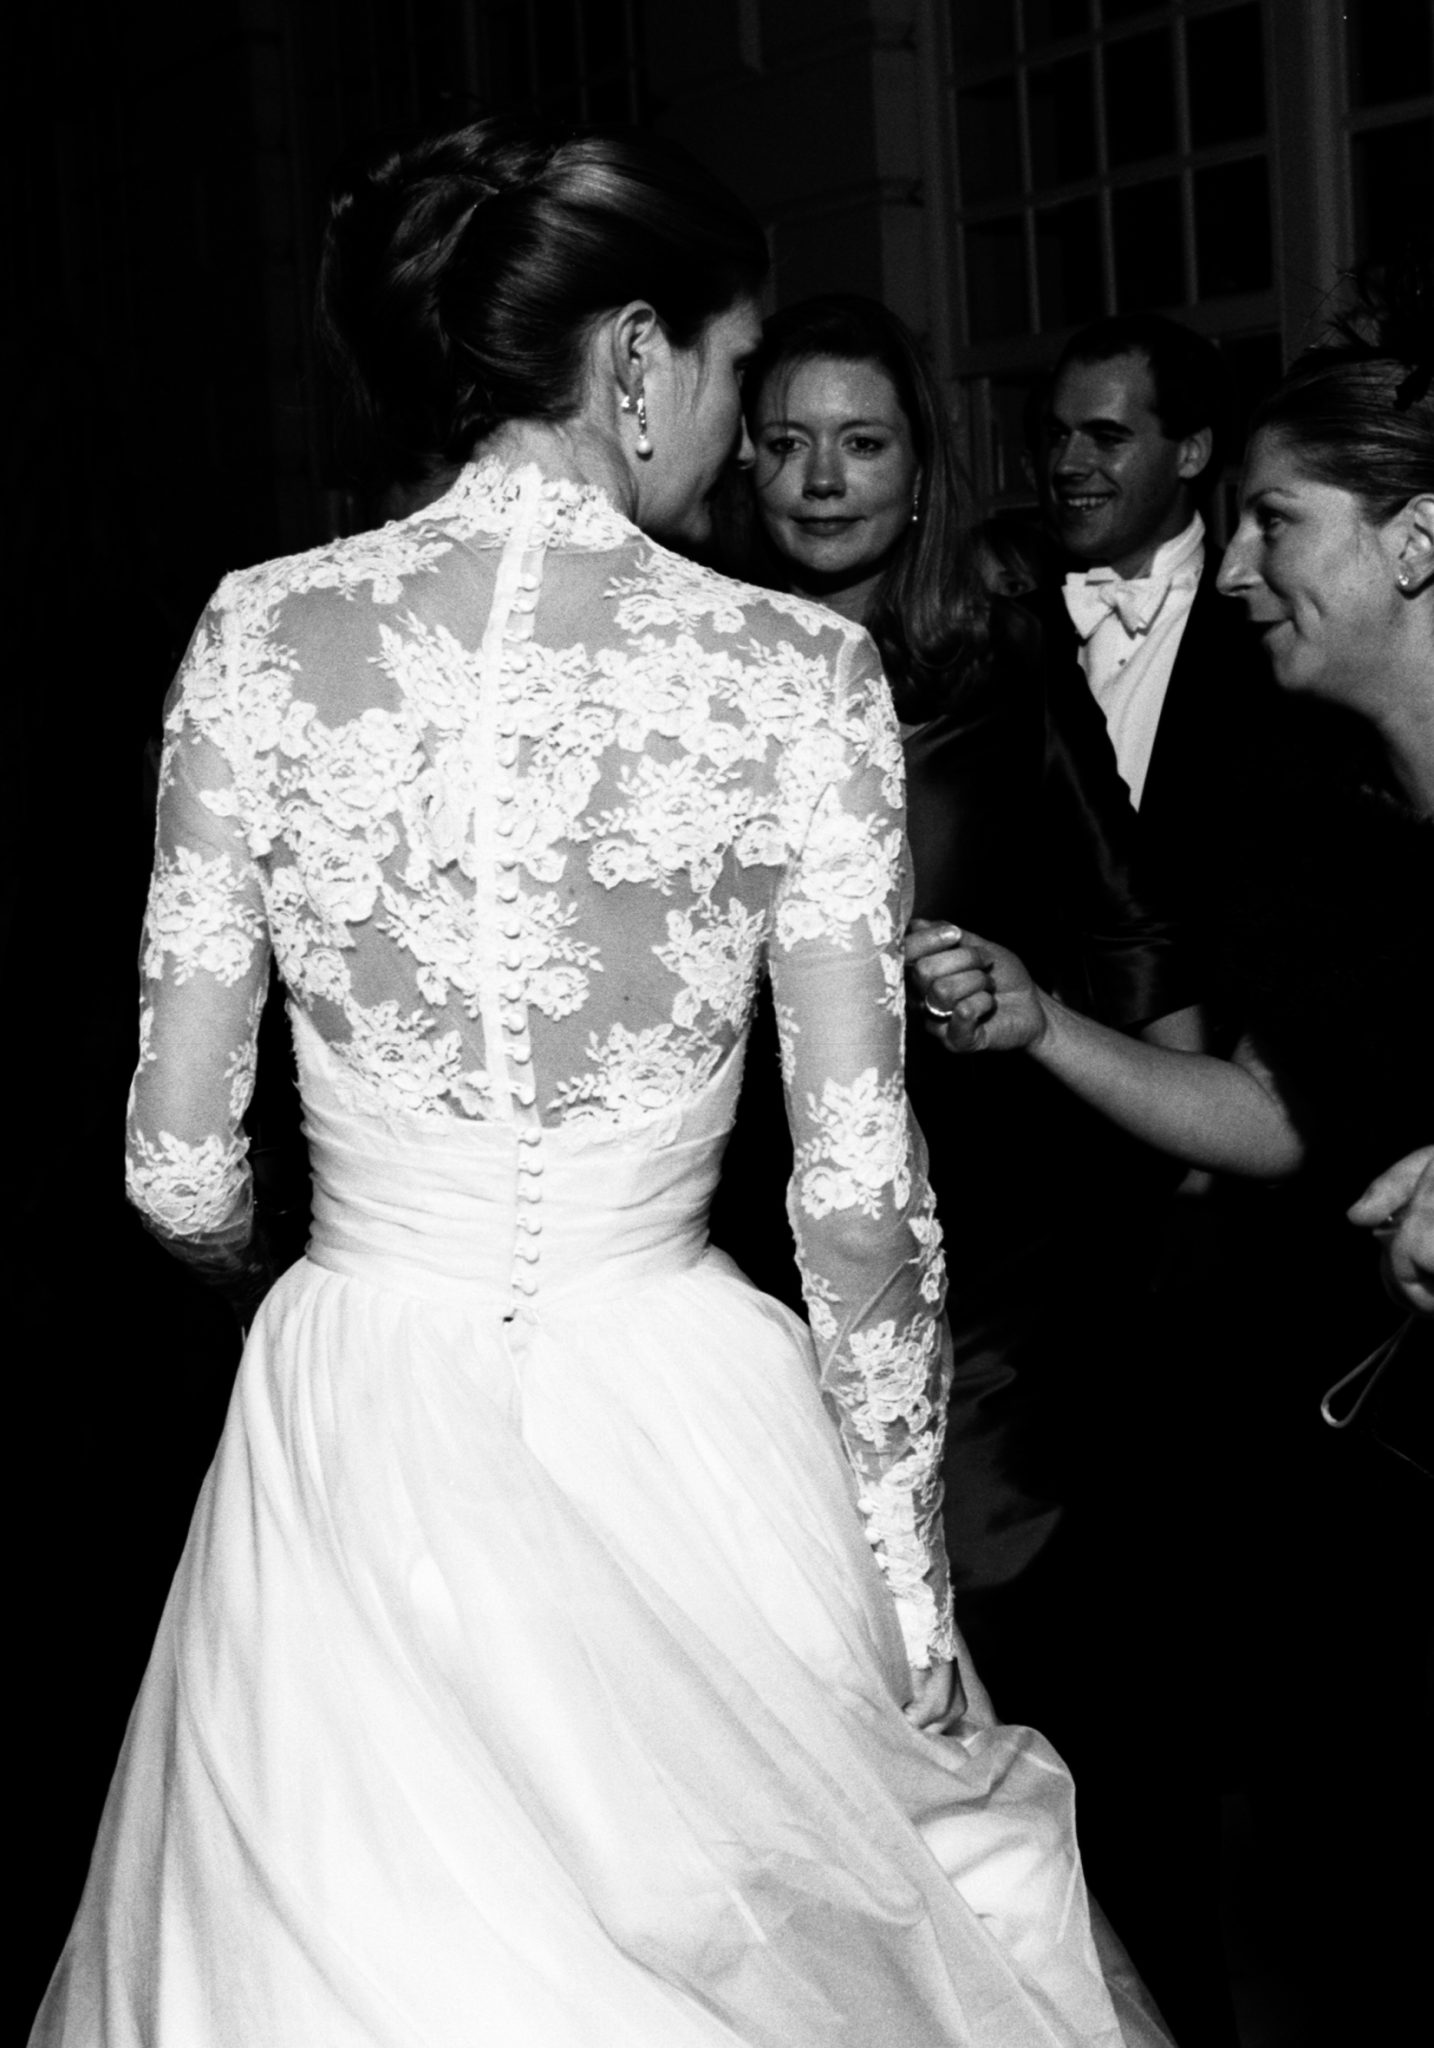 Phillipa-Lepley-Couture-Lace-Sleeves-Wedding-Dress-Buttons-HIgh-Neck-Wedding-Dress-London-Traditional